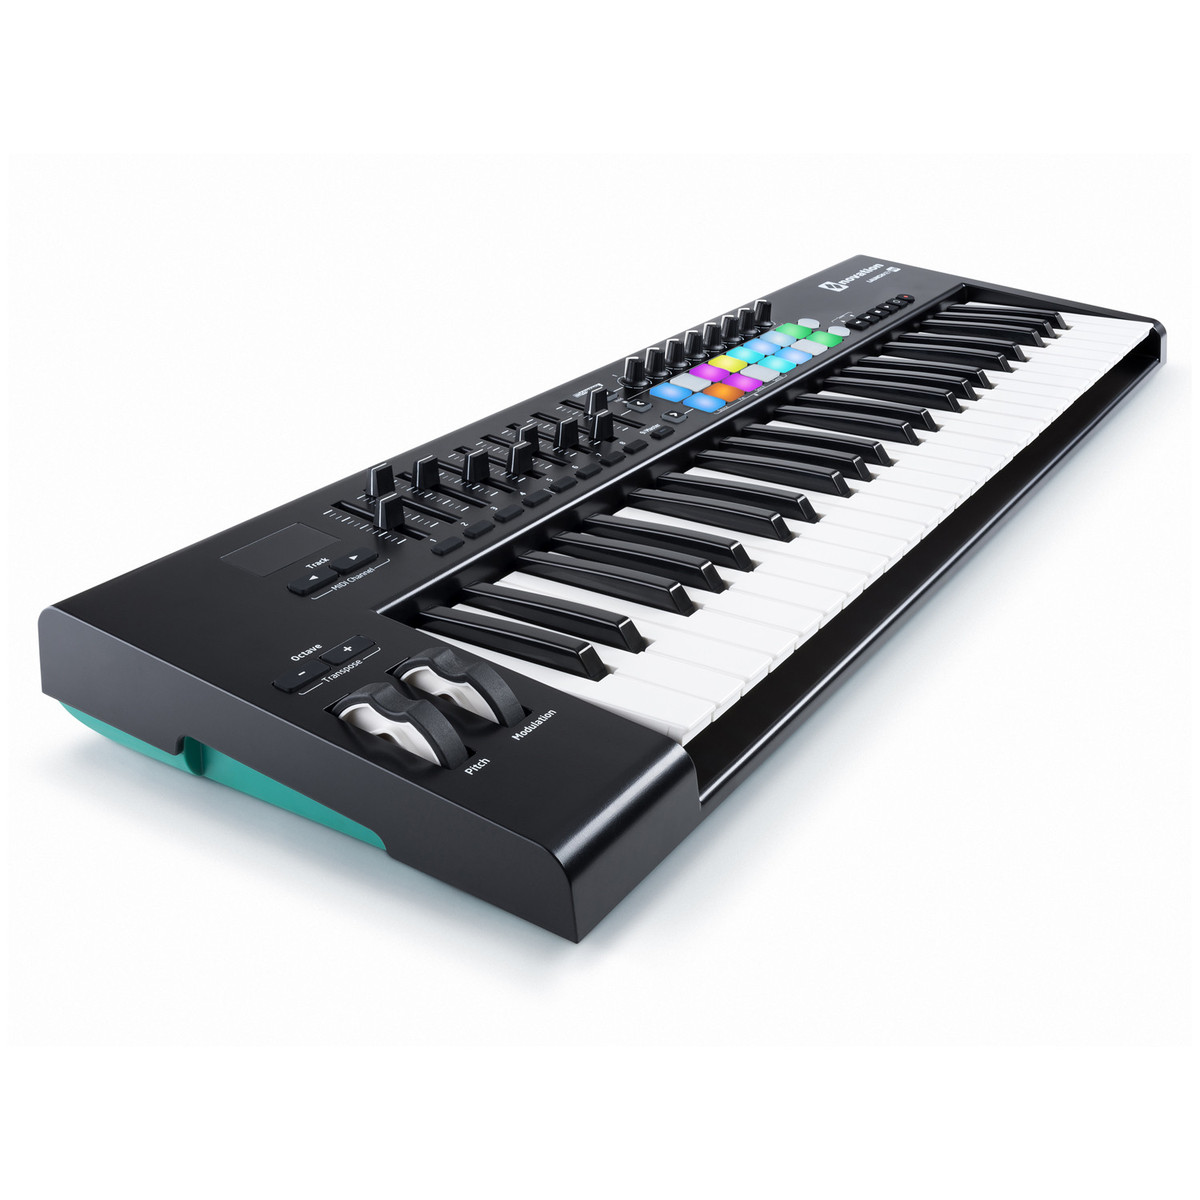 novation launchkey 49 mk2 midi controller keyboard at gear4music. Black Bedroom Furniture Sets. Home Design Ideas